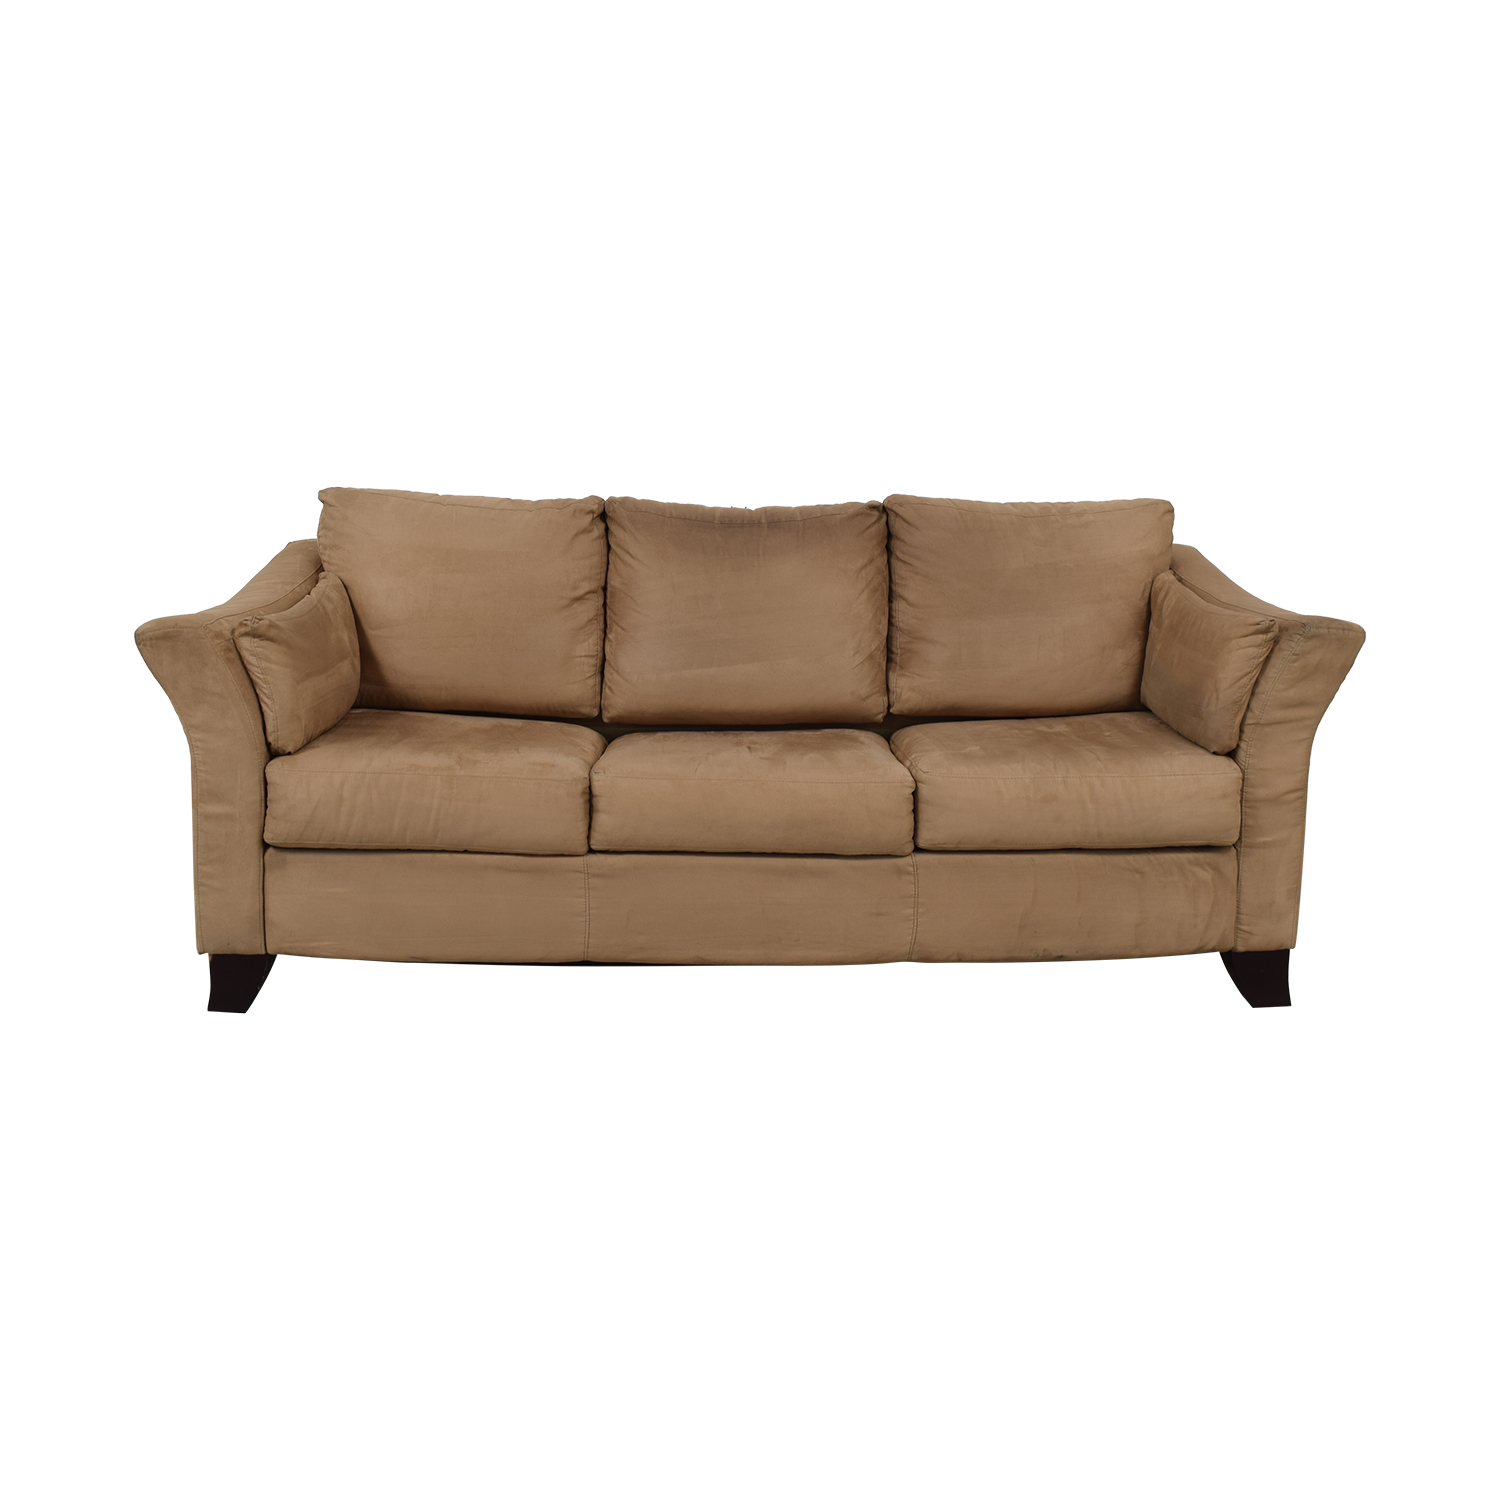 Jennifer Furniture Jennifer Furniture Beige Three-Cushion Covertiable Sofa nj